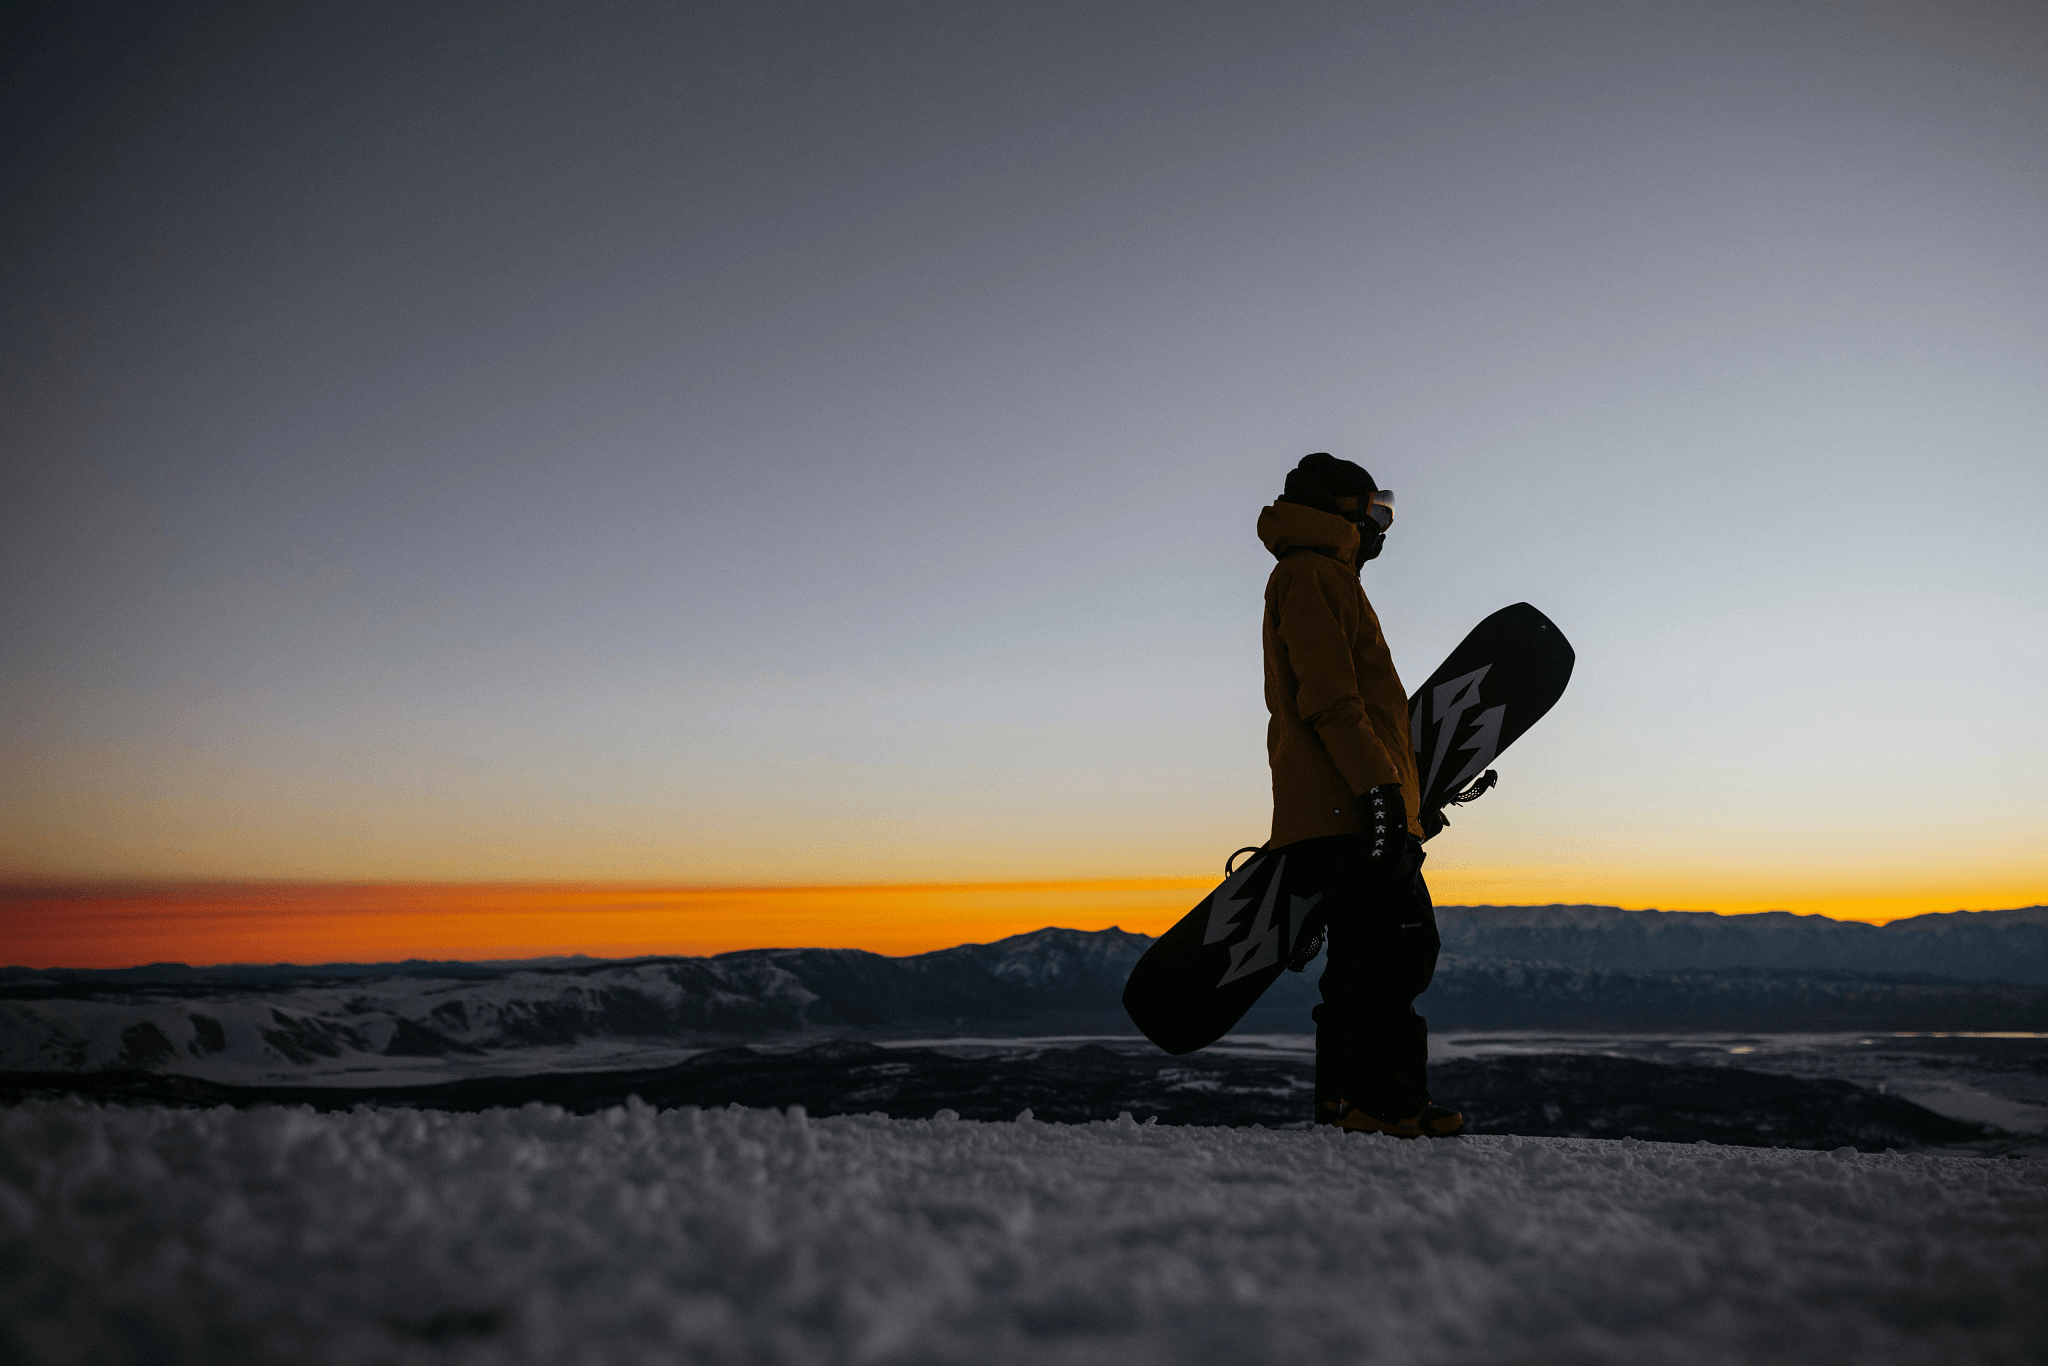 Man holding a snowboard watching the sunrise on top of a mountain ski slope